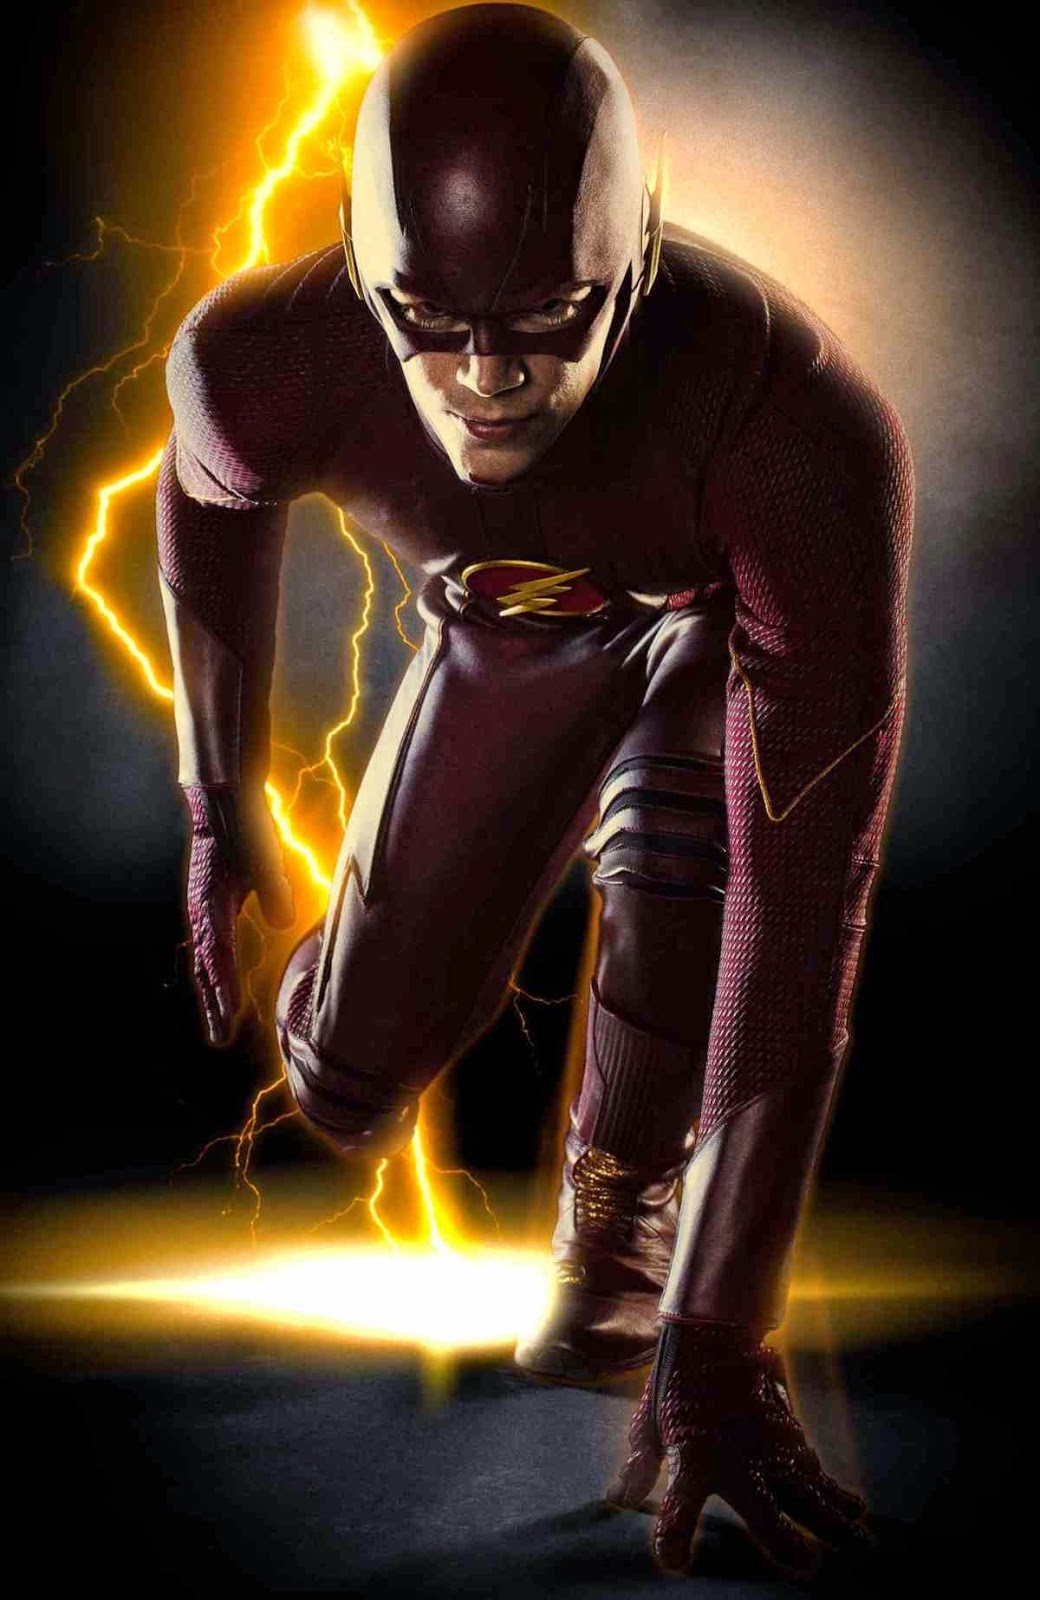 Grant Gustin in costume as The Flash, left arm and left leg lurched forward touching the ground with right side of his body moved back